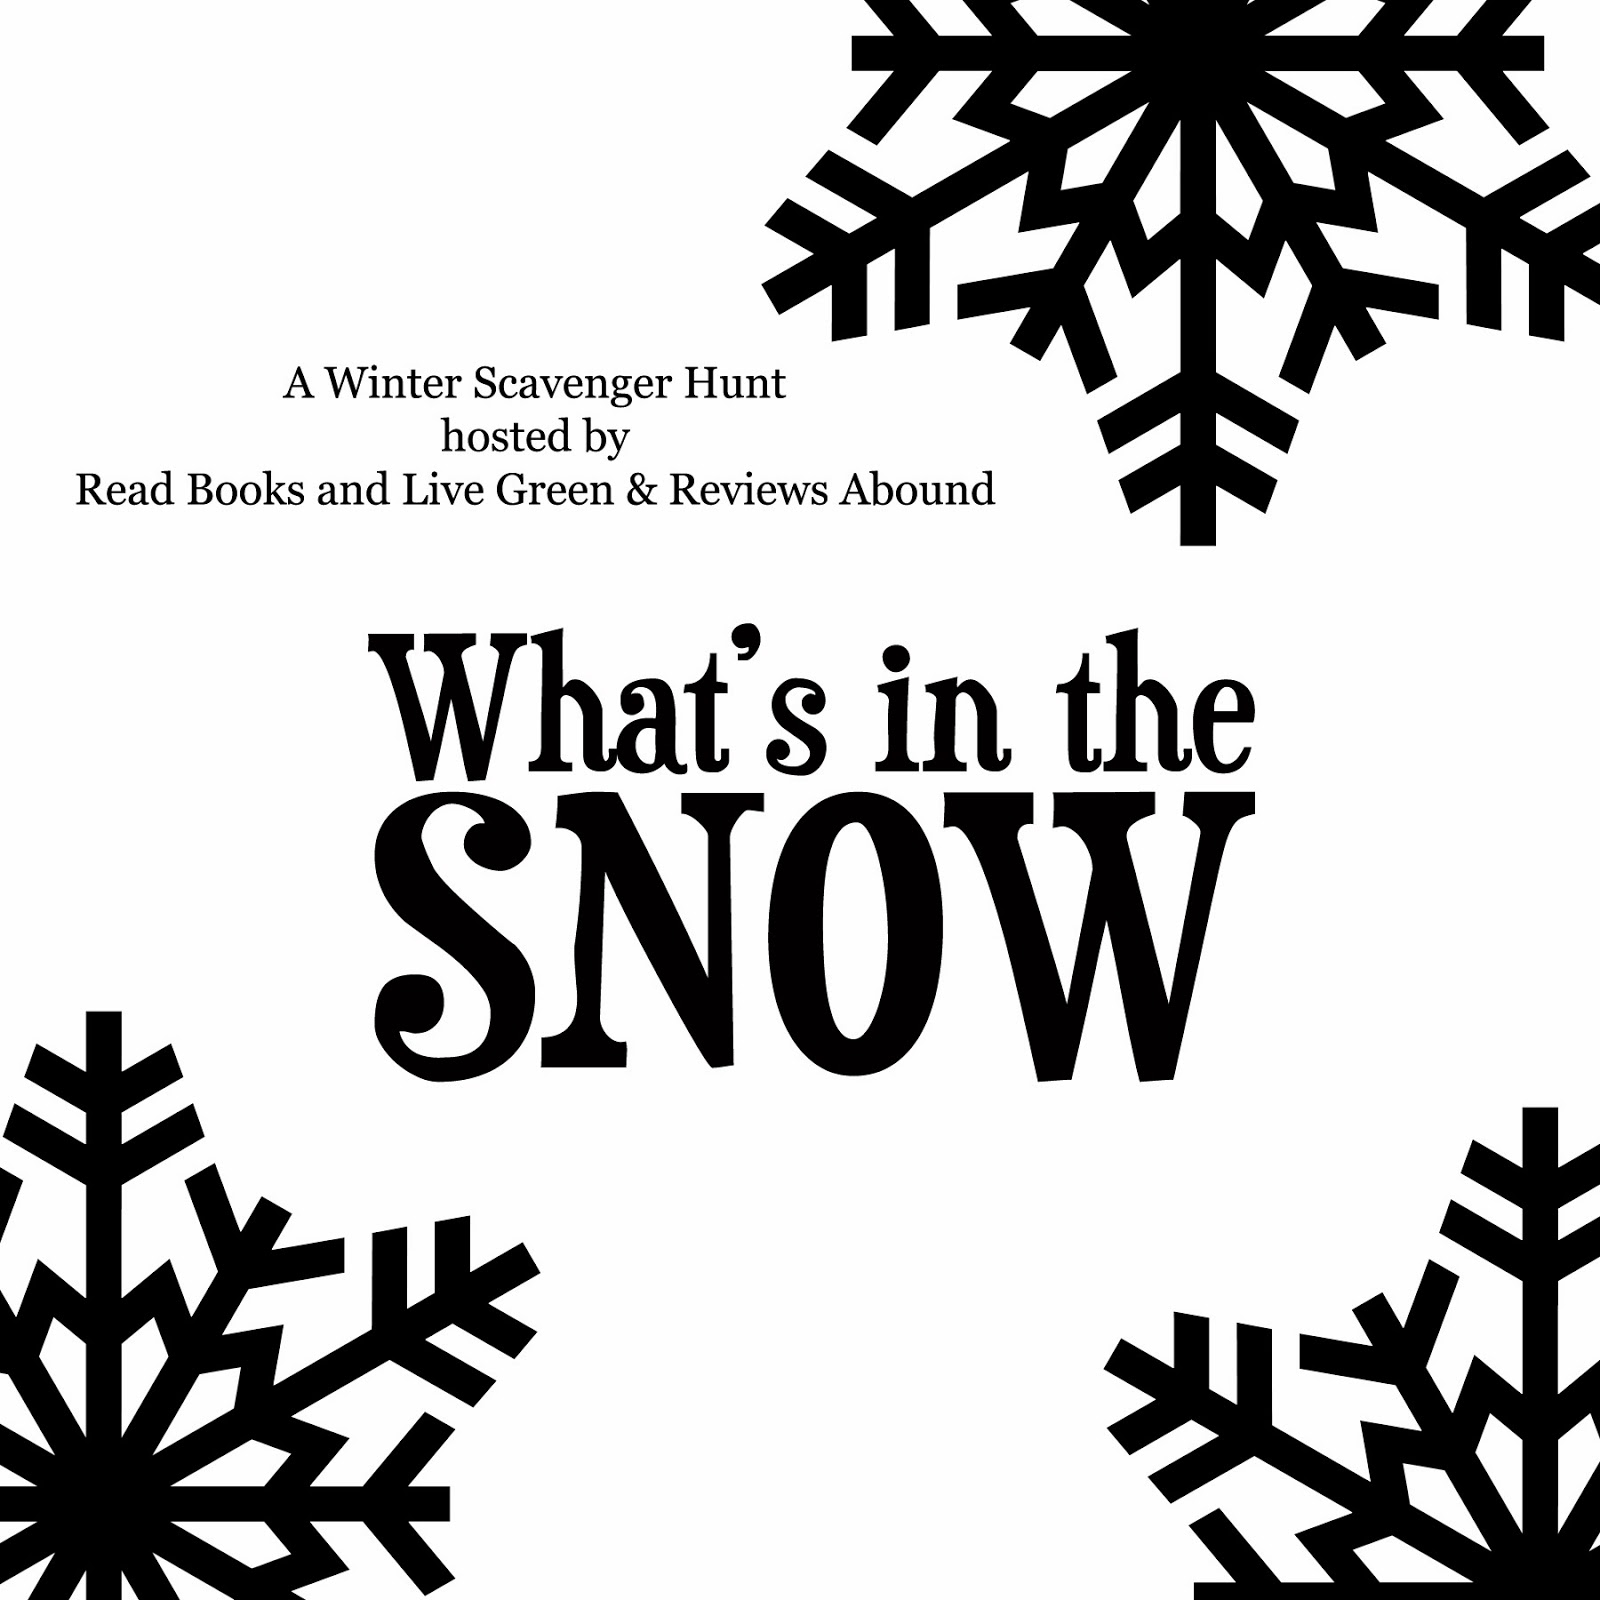 Read Books and Live Green: What's in the Snow? Winter